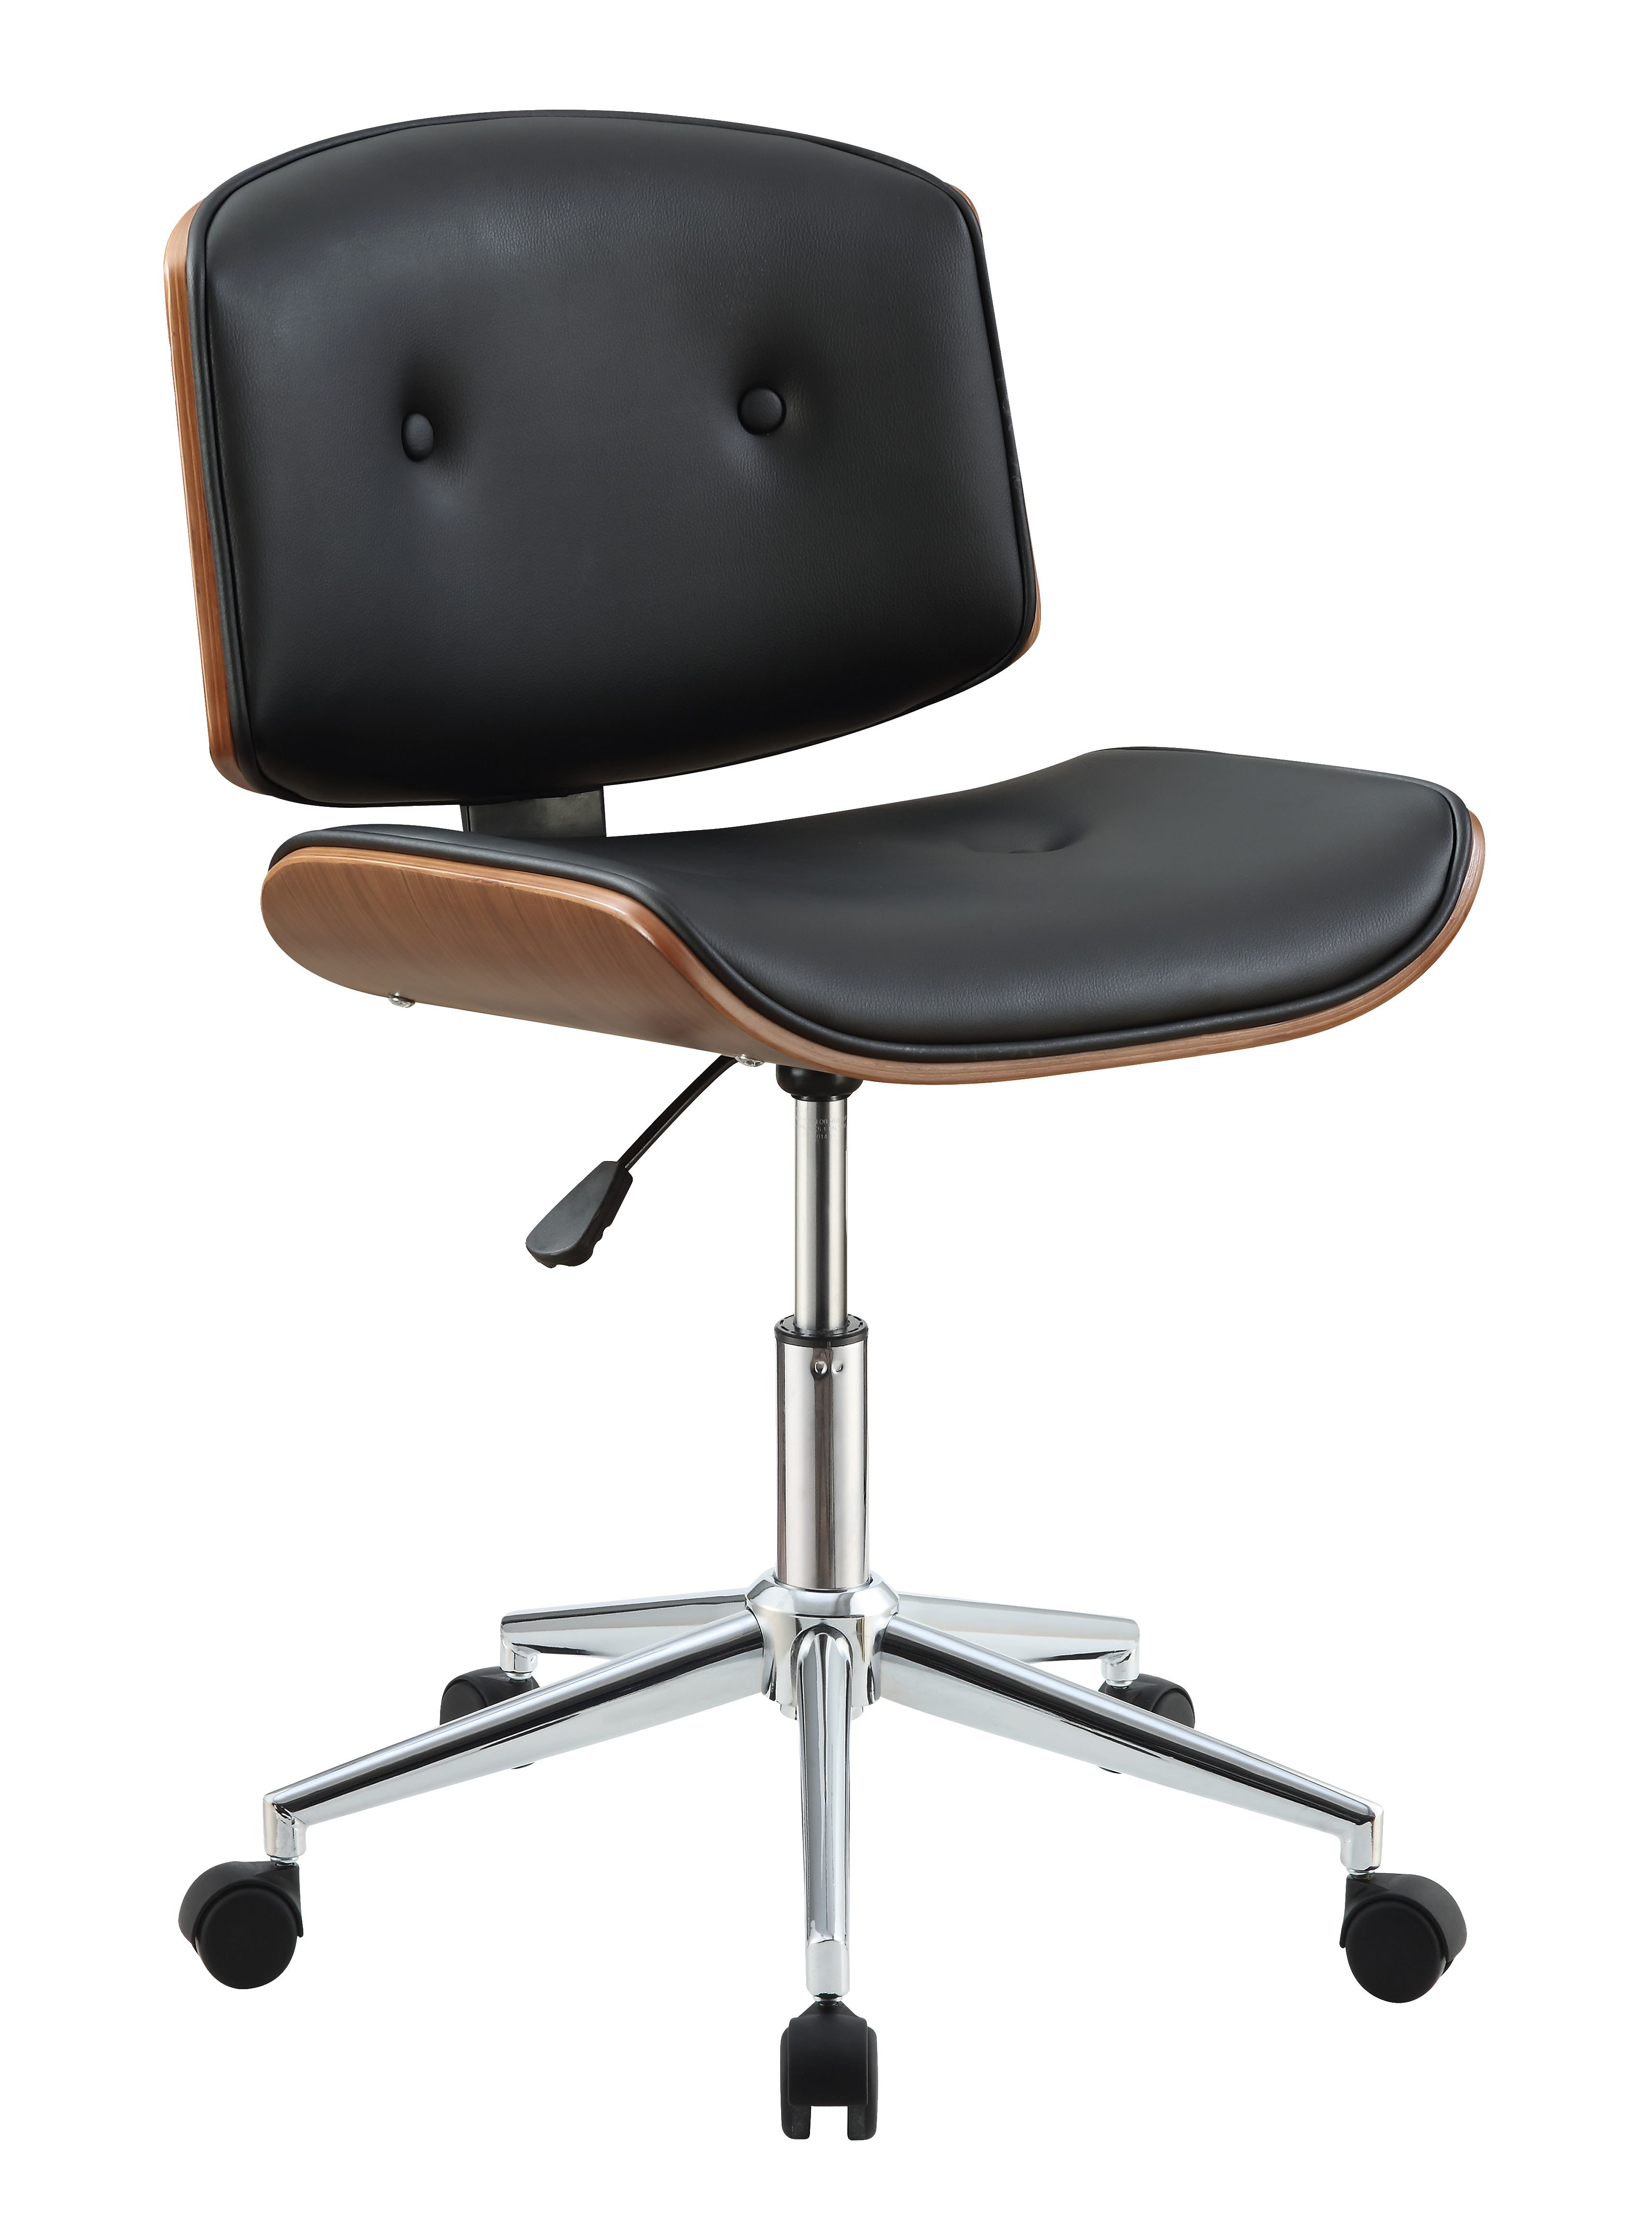 Metal & Wooden Office Armless Chair, Black & Walnut Brown